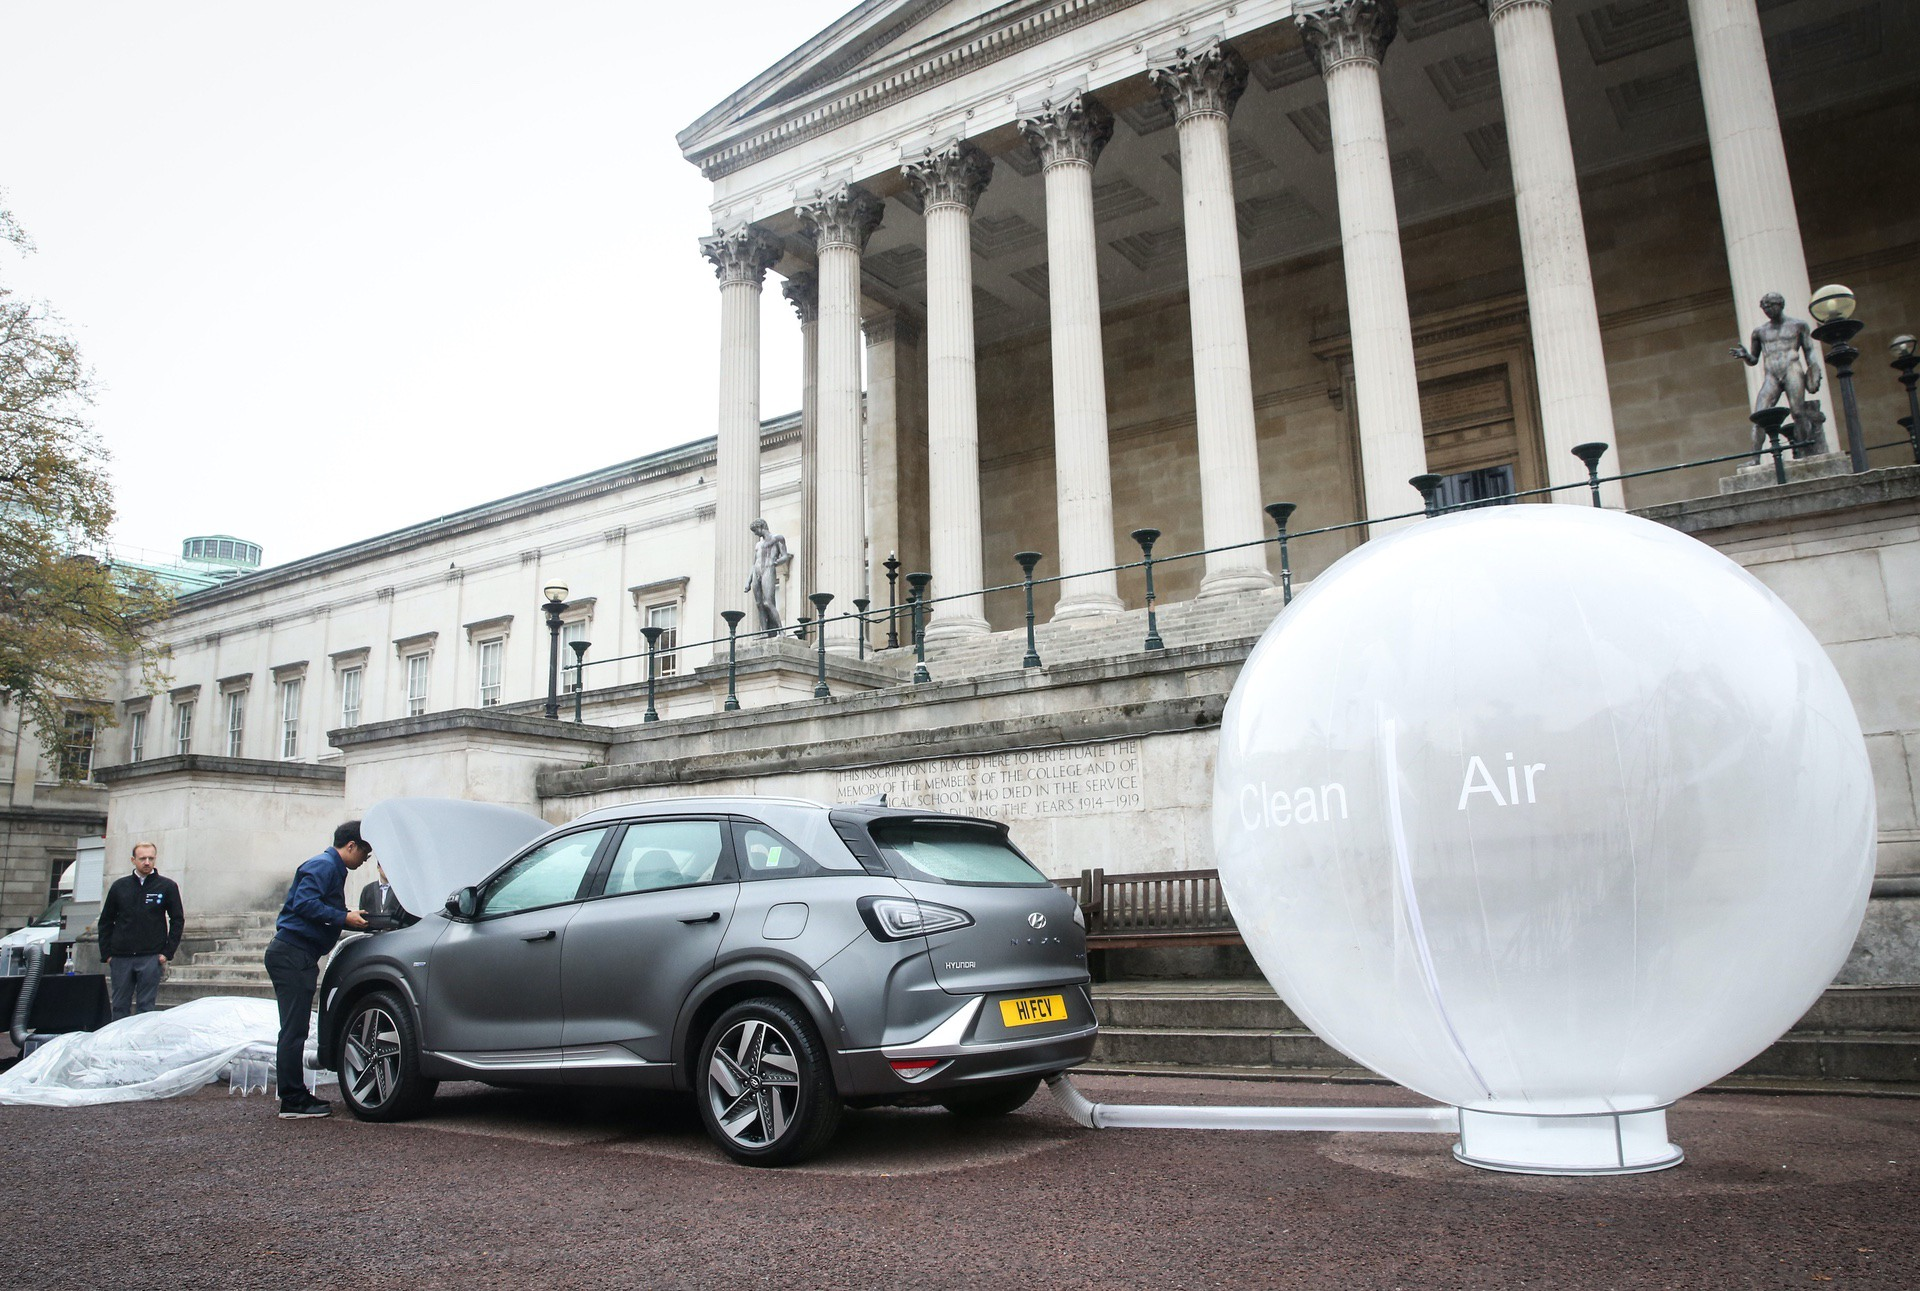 EDITORIAL USE ONLY A 'clean air' demonstration, which shows Hyundai's new hydrogen fuel cell car – the NEXO, cleaning the air of pollutants takes place at UCL in London, following analysis by the university that mapped out the capital's most polluted route. PRESS ASSOCIATION Photo. Picture date: Wednesday October 17, 2018. Photo credit should read: Matt Alexander/PA Wire